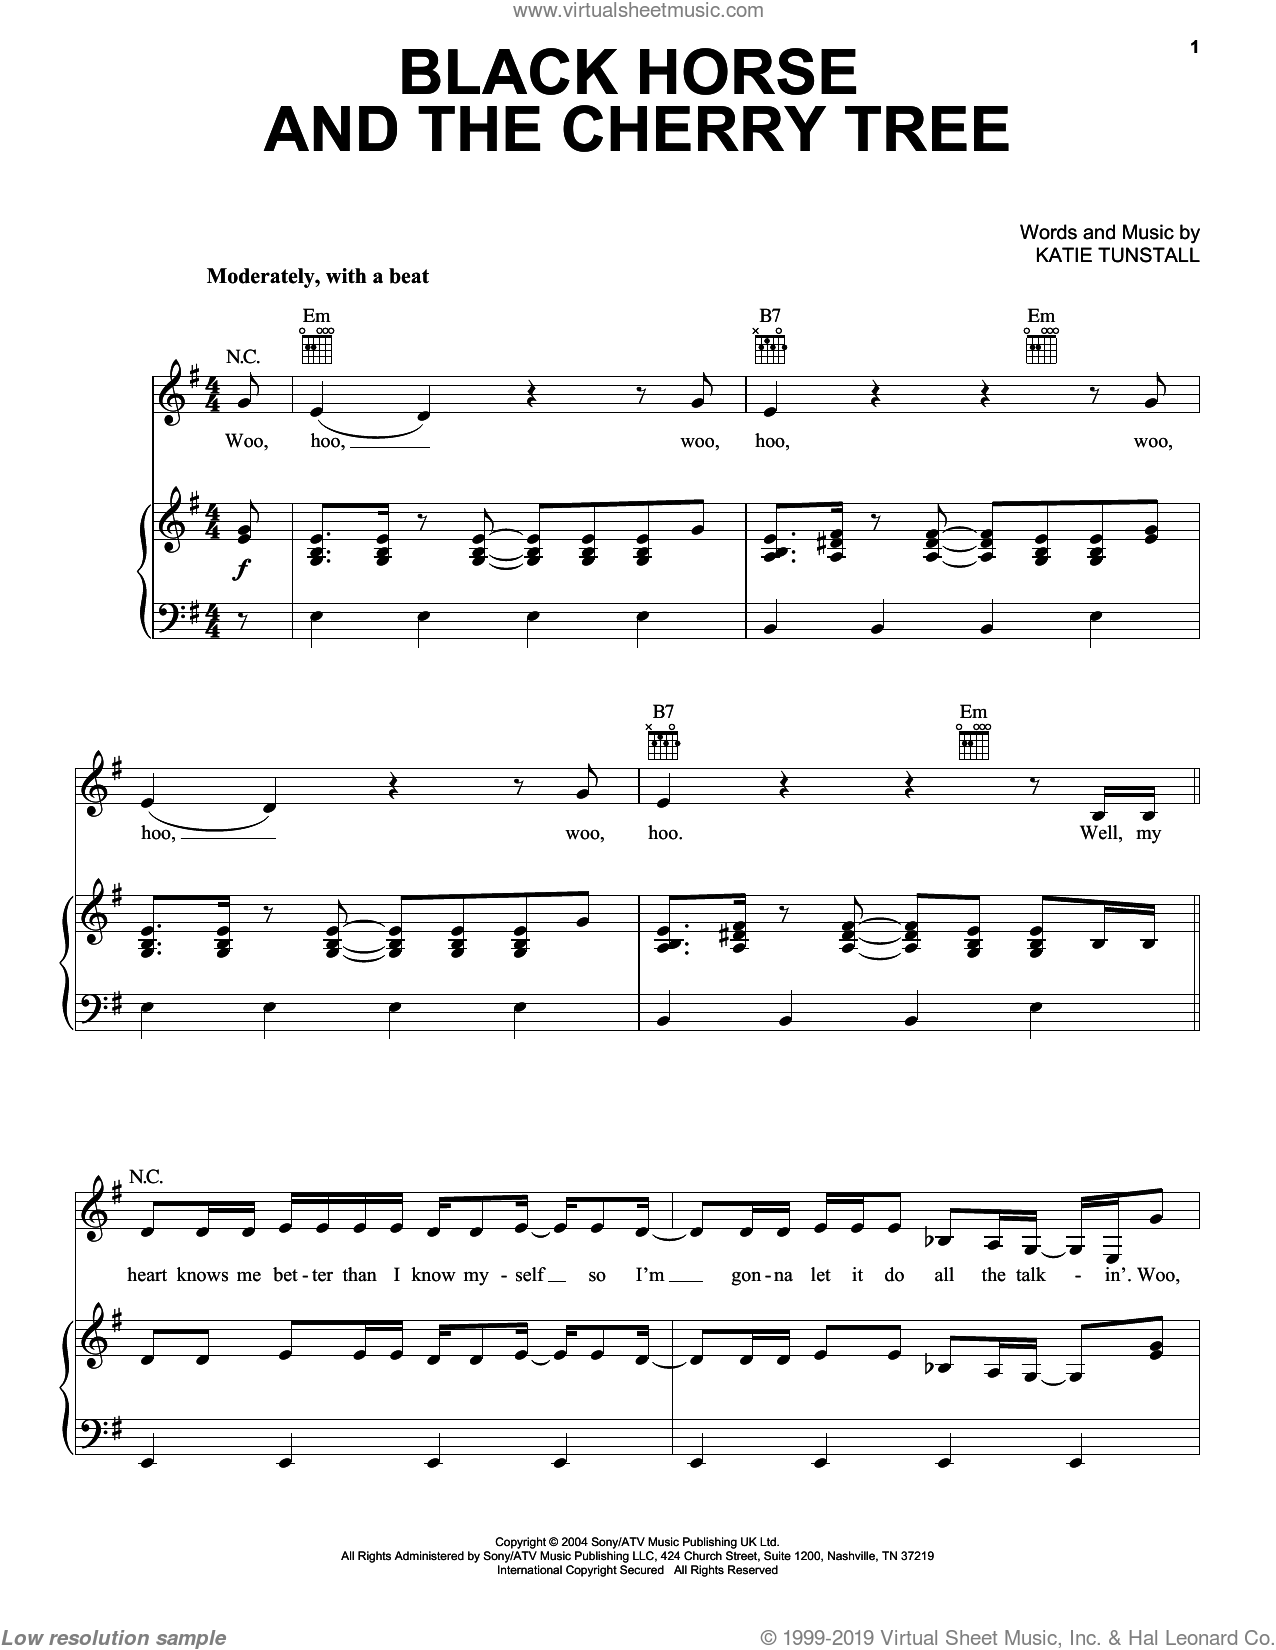 Black Horse And The Cherry Tree sheet music for voice, piano or guitar by KT Tunstall